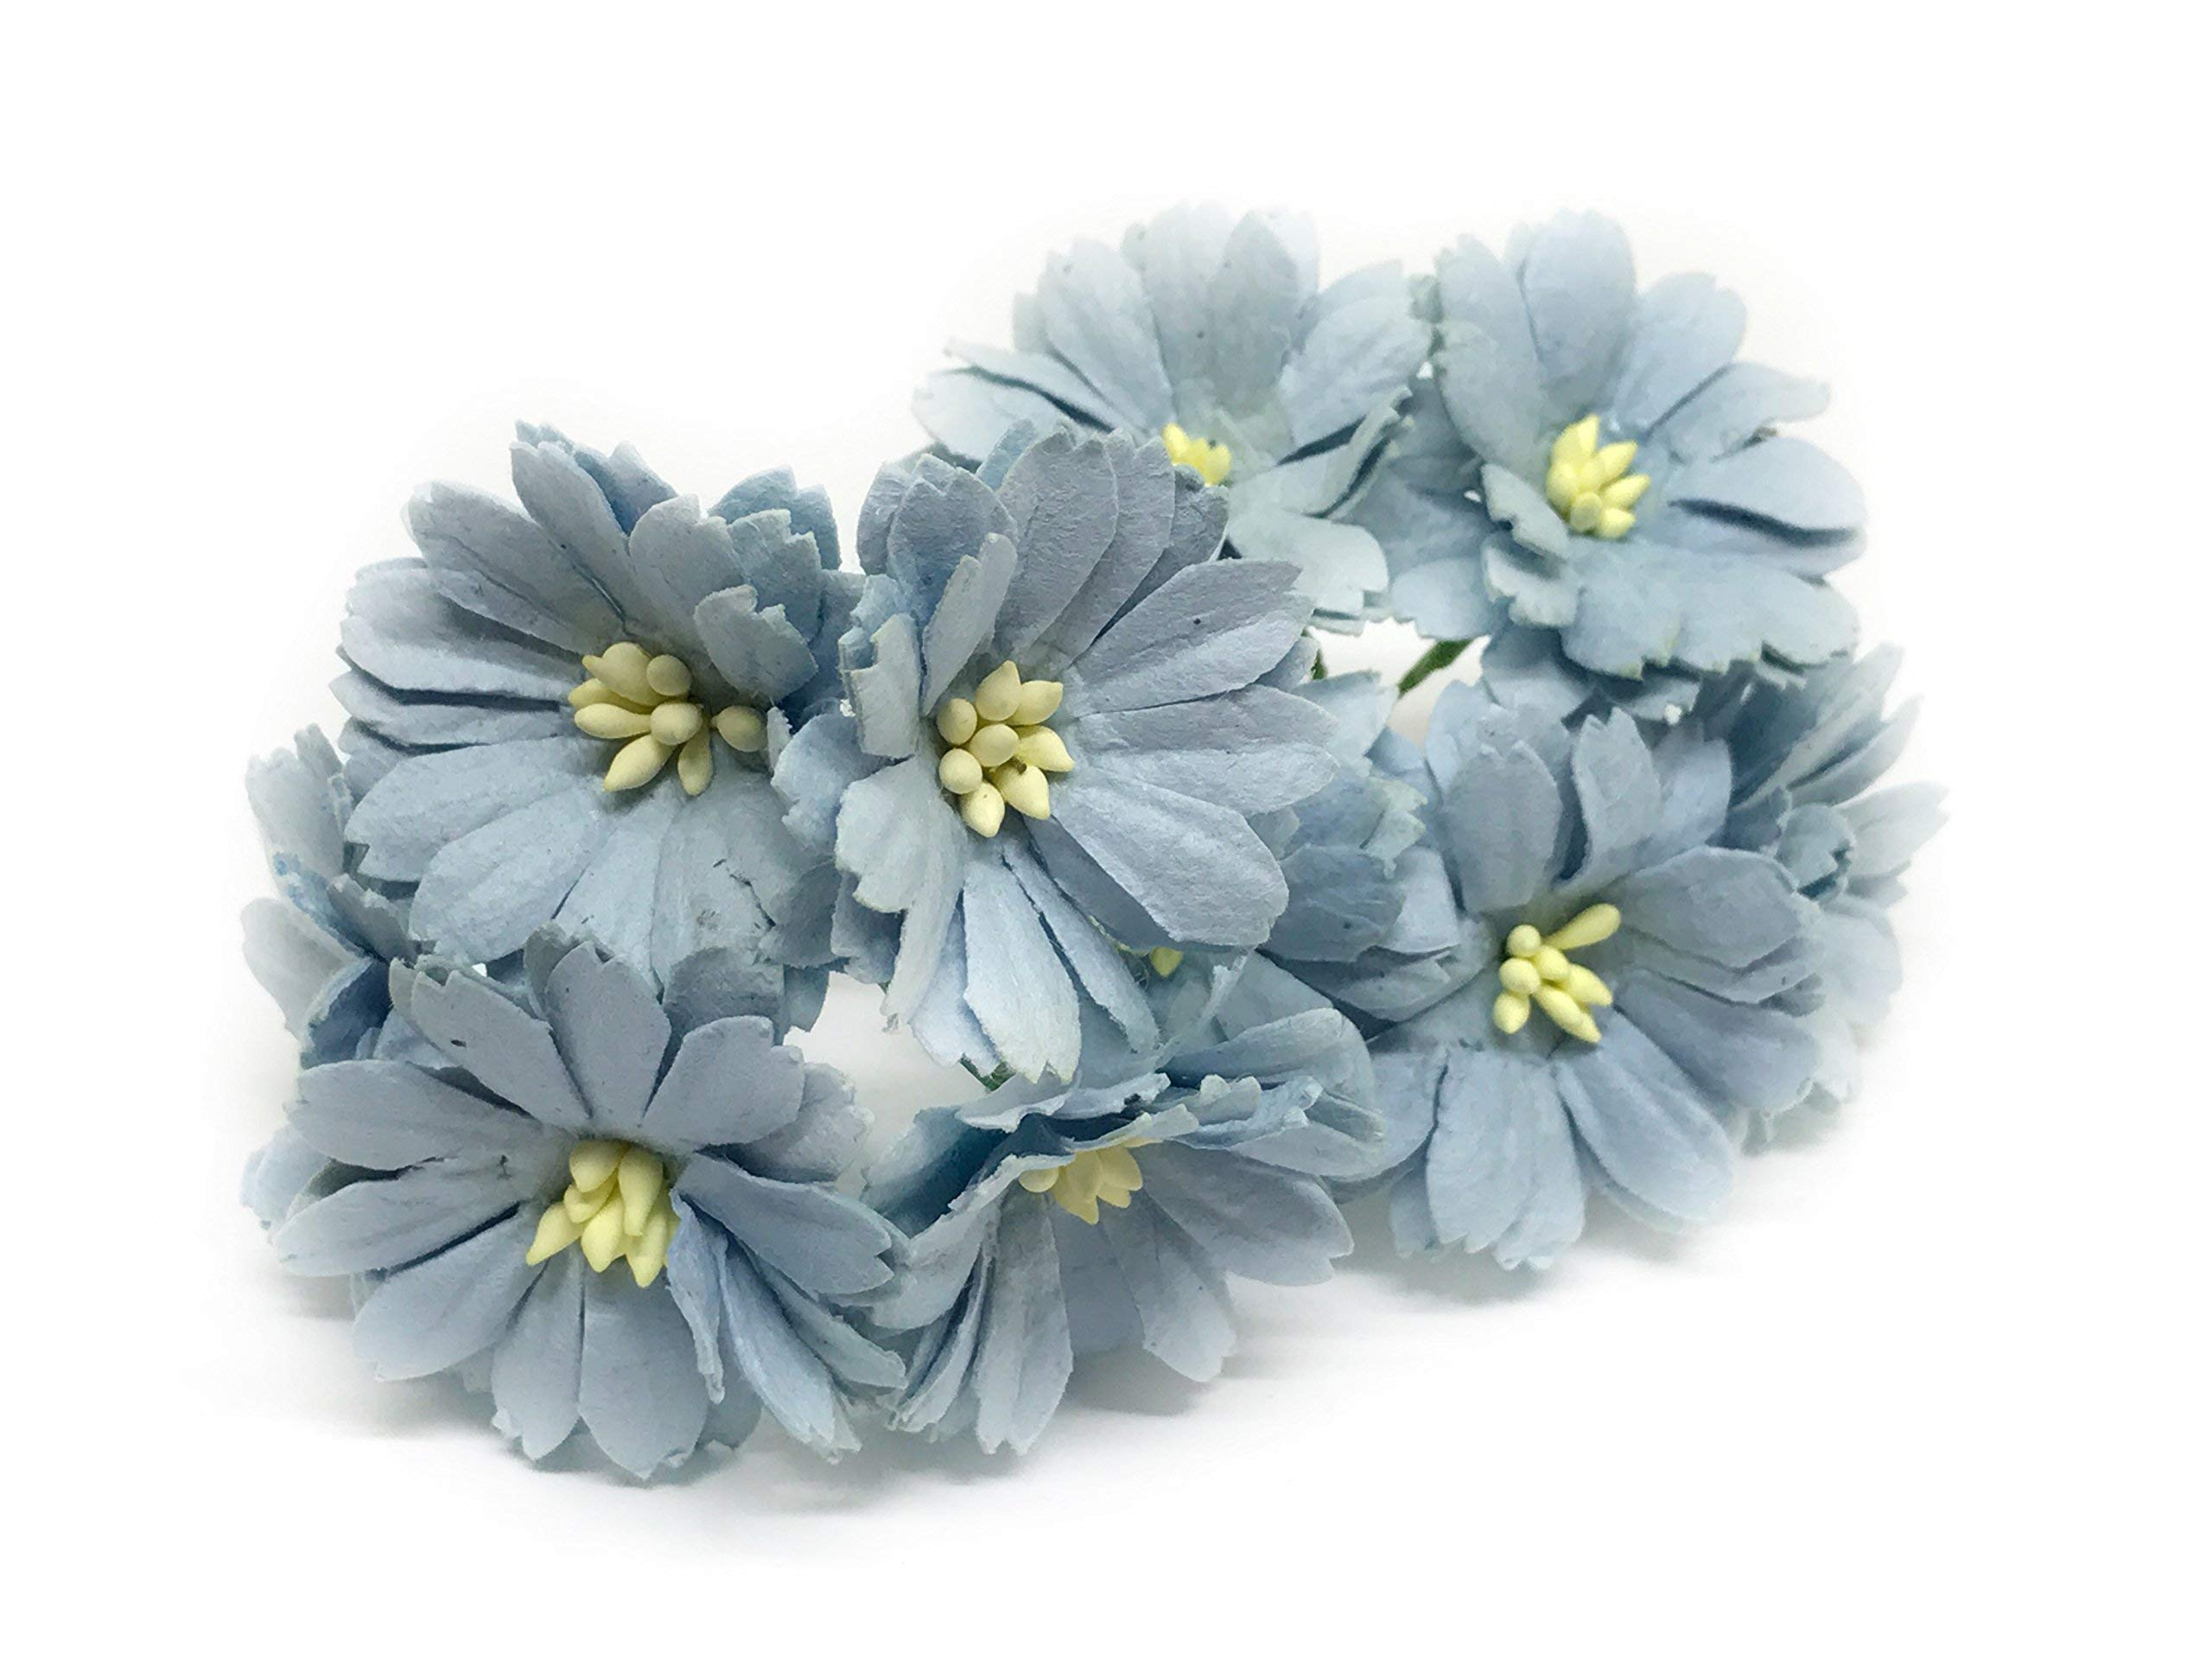 15-Blue-Paper-Daisies-Mulberry-Paper-Flowers-Miniature-Flowers-Mulberry-Paper-Daisy-Paper-Flower-Wedding-Favor-Decor-Artificial-Flowers-25-Pieces